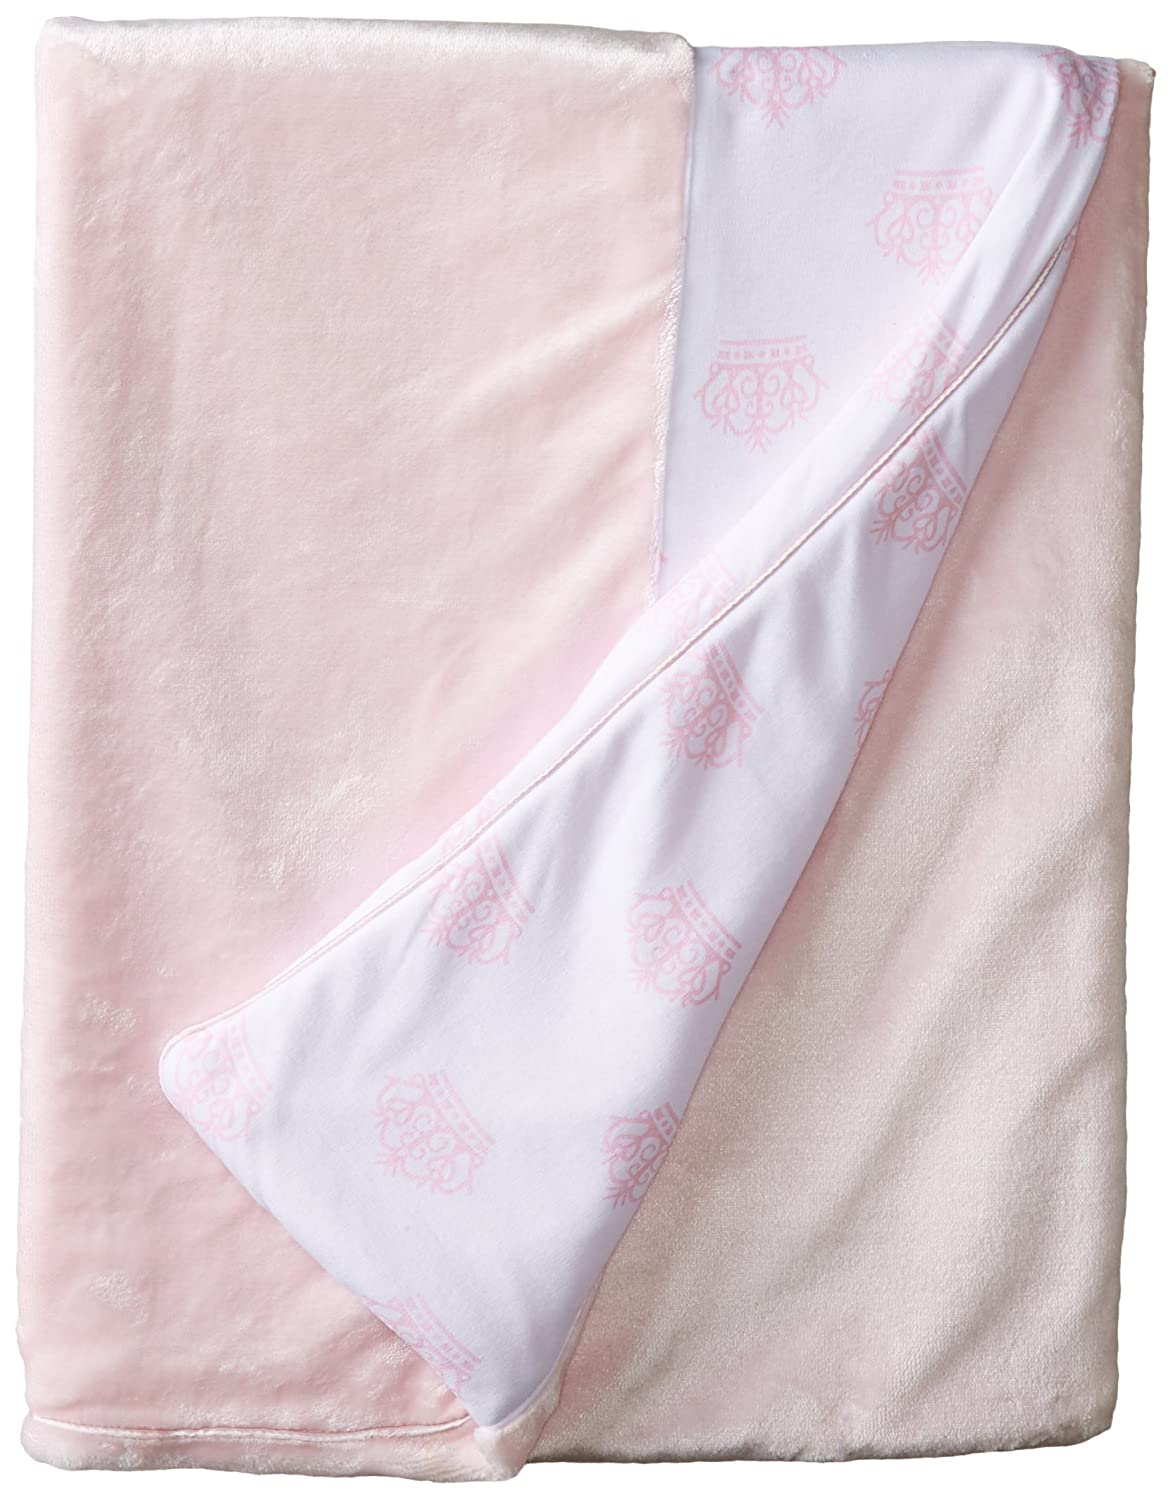 Amazon.com : Baby-Girls Girls recién nacido felpa Swaddle Manta : Baby